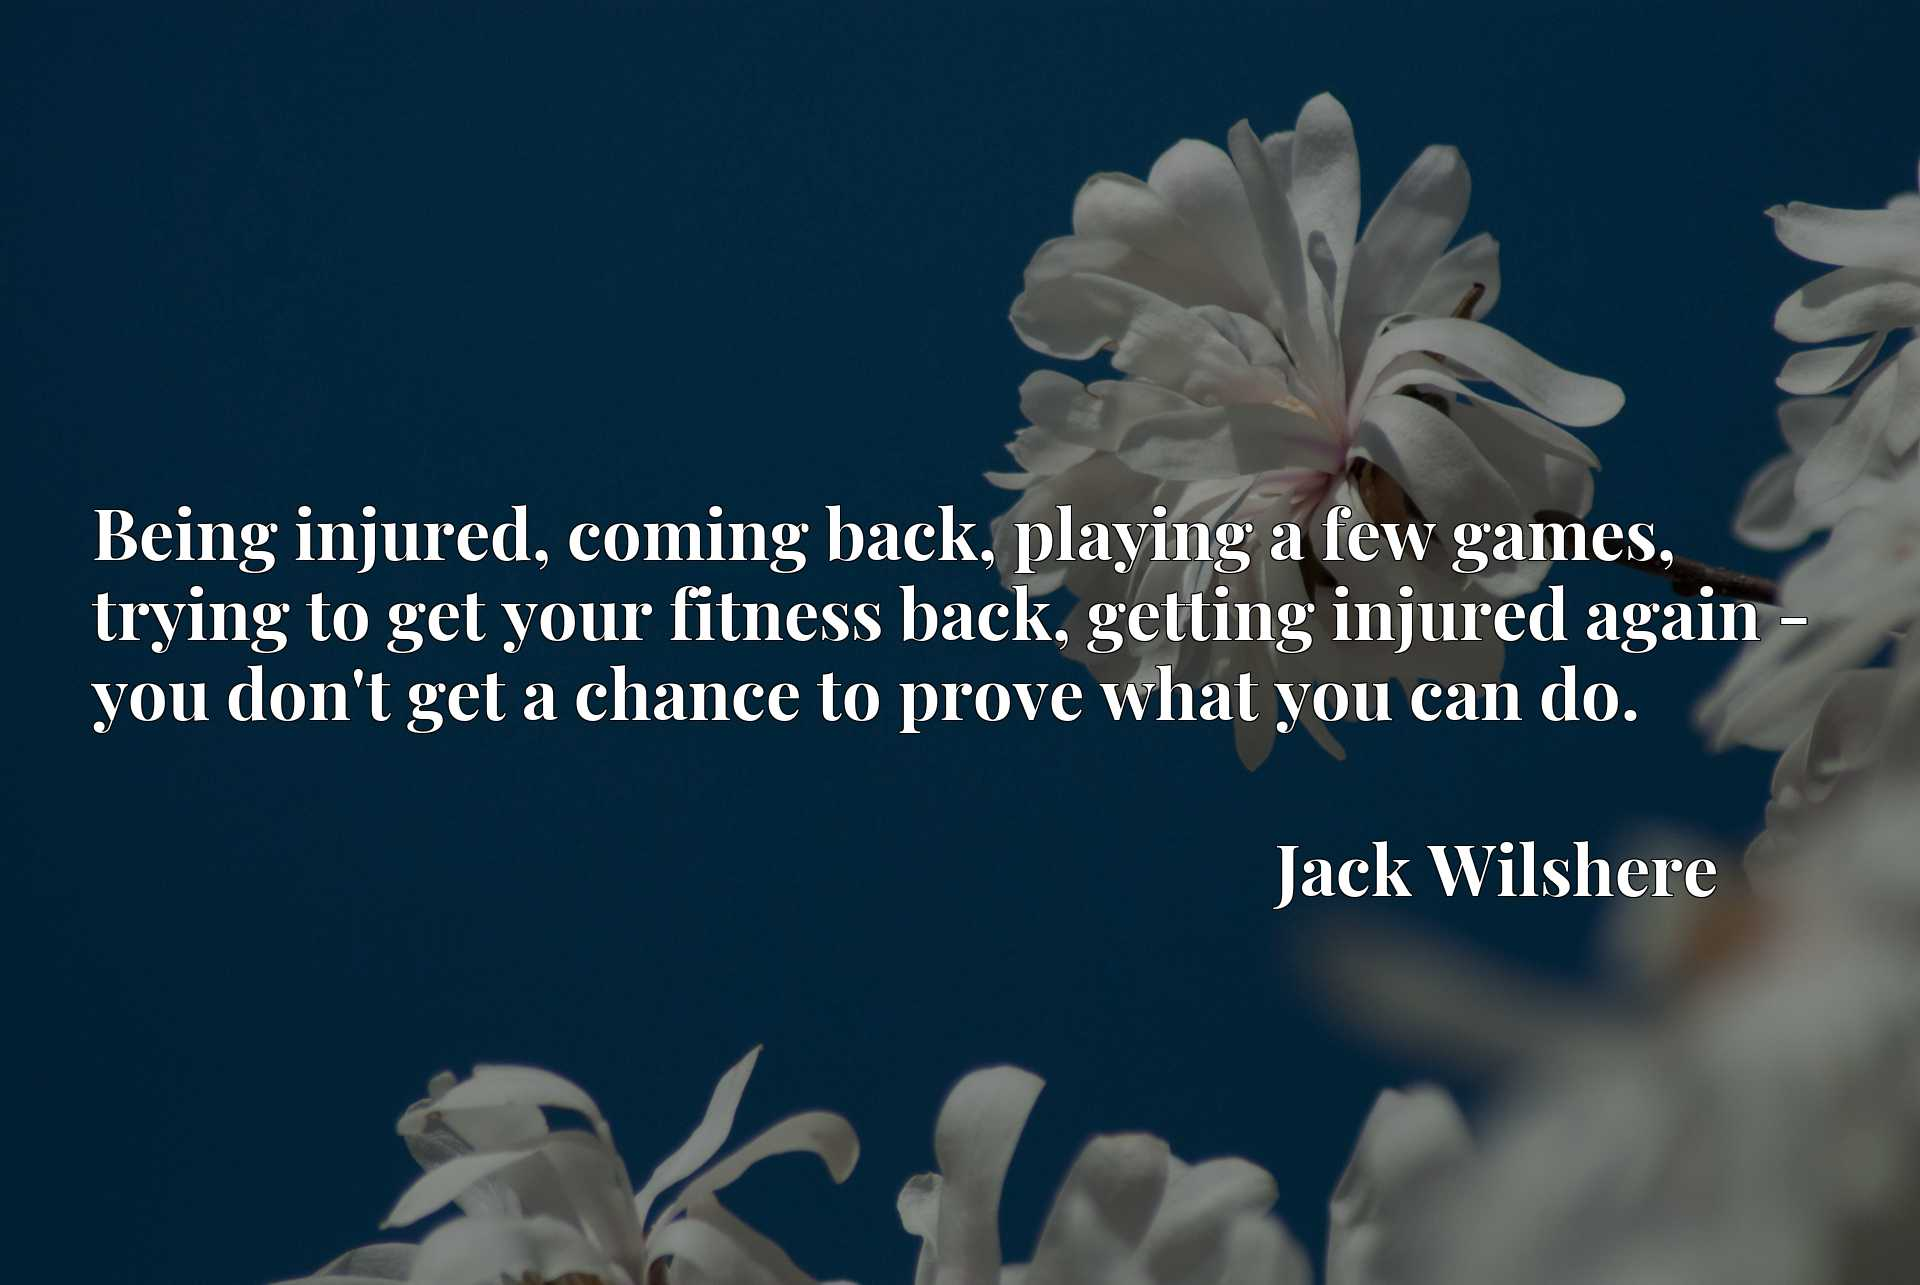 Being injured, coming back, playing a few games, trying to get your fitness back, getting injured again - you don't get a chance to prove what you can do.